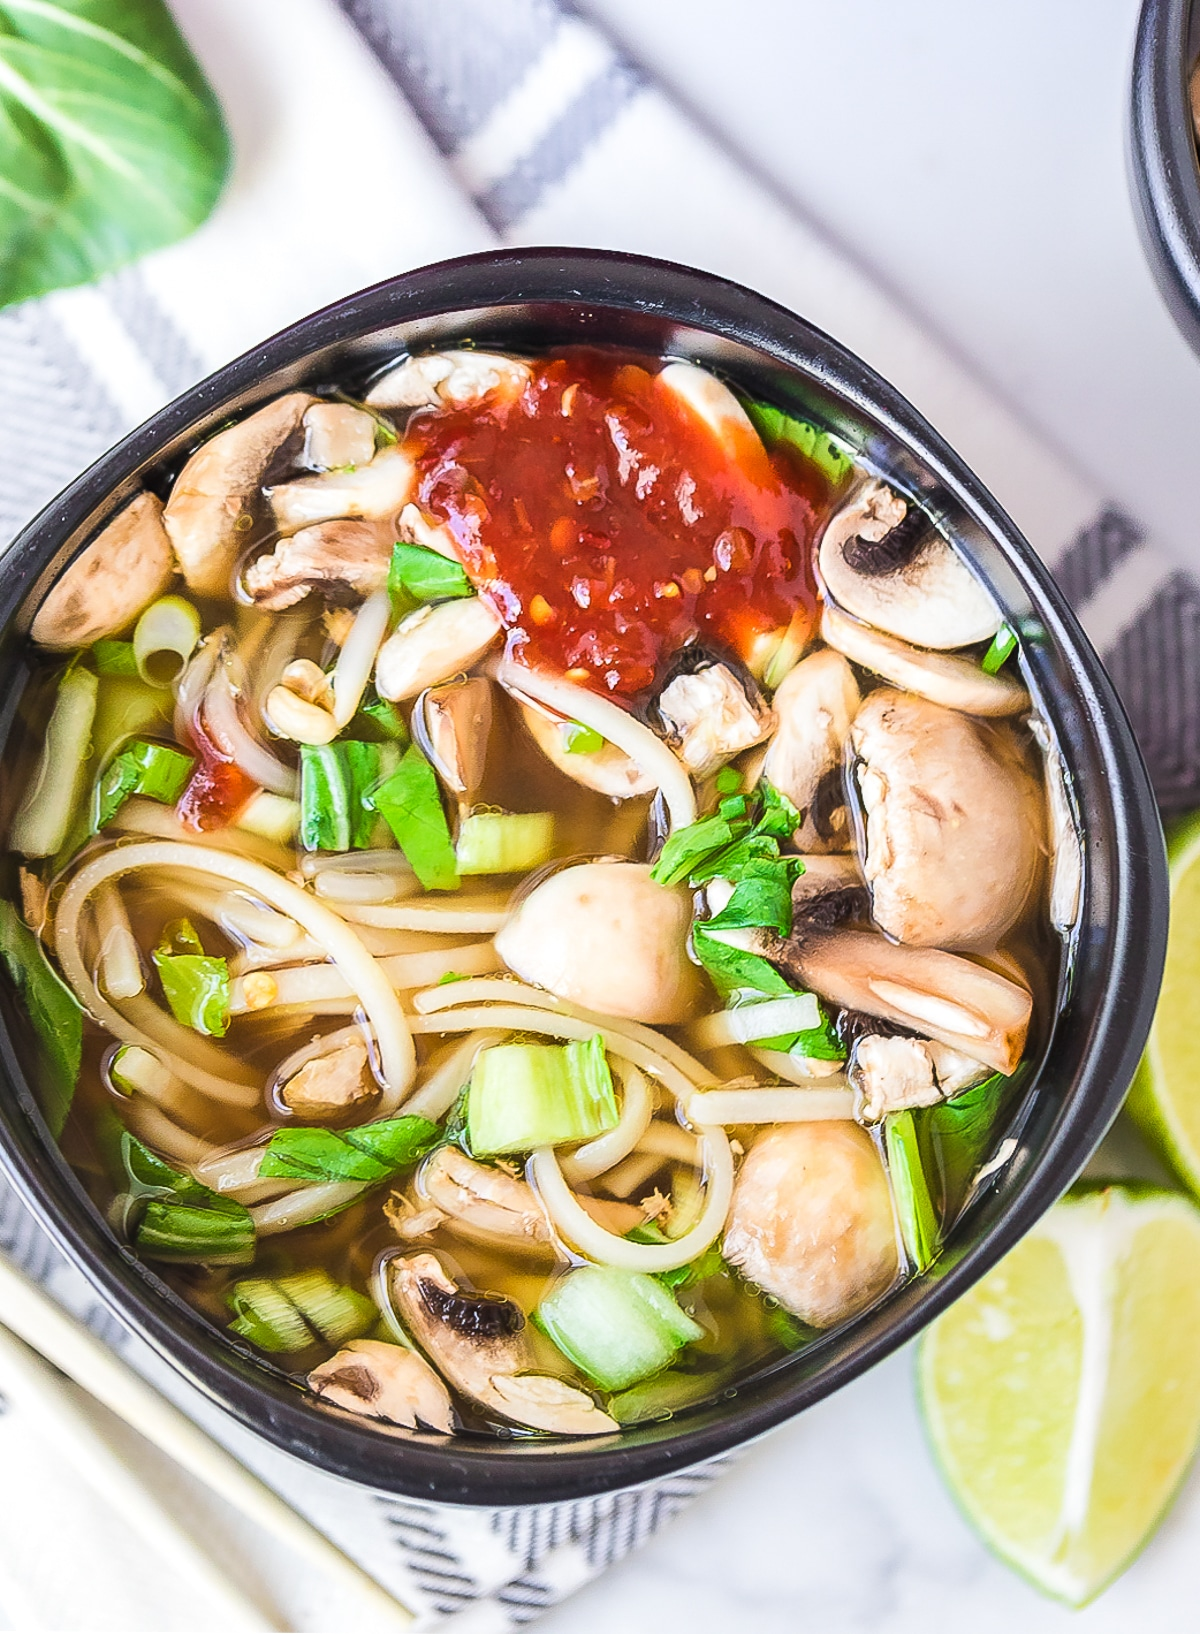 Amazing Chinese Hot Pot Recipe (Gluten Free) #ASpicyPerspective #glutenfree #soup #chinese #healthy